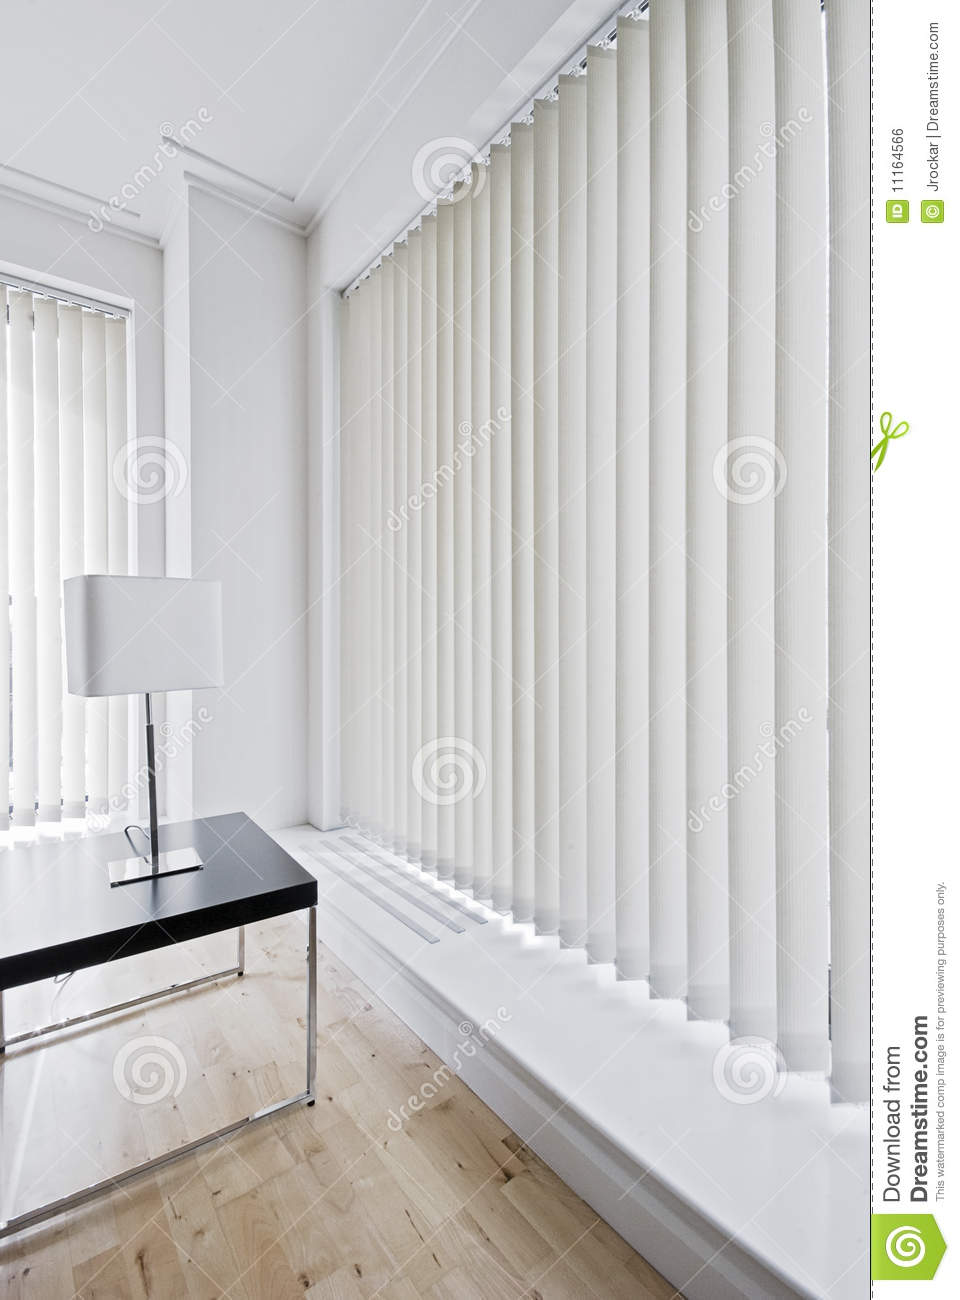 Vertical Blinds Stock Photo Image Of Creme Metal Fabric